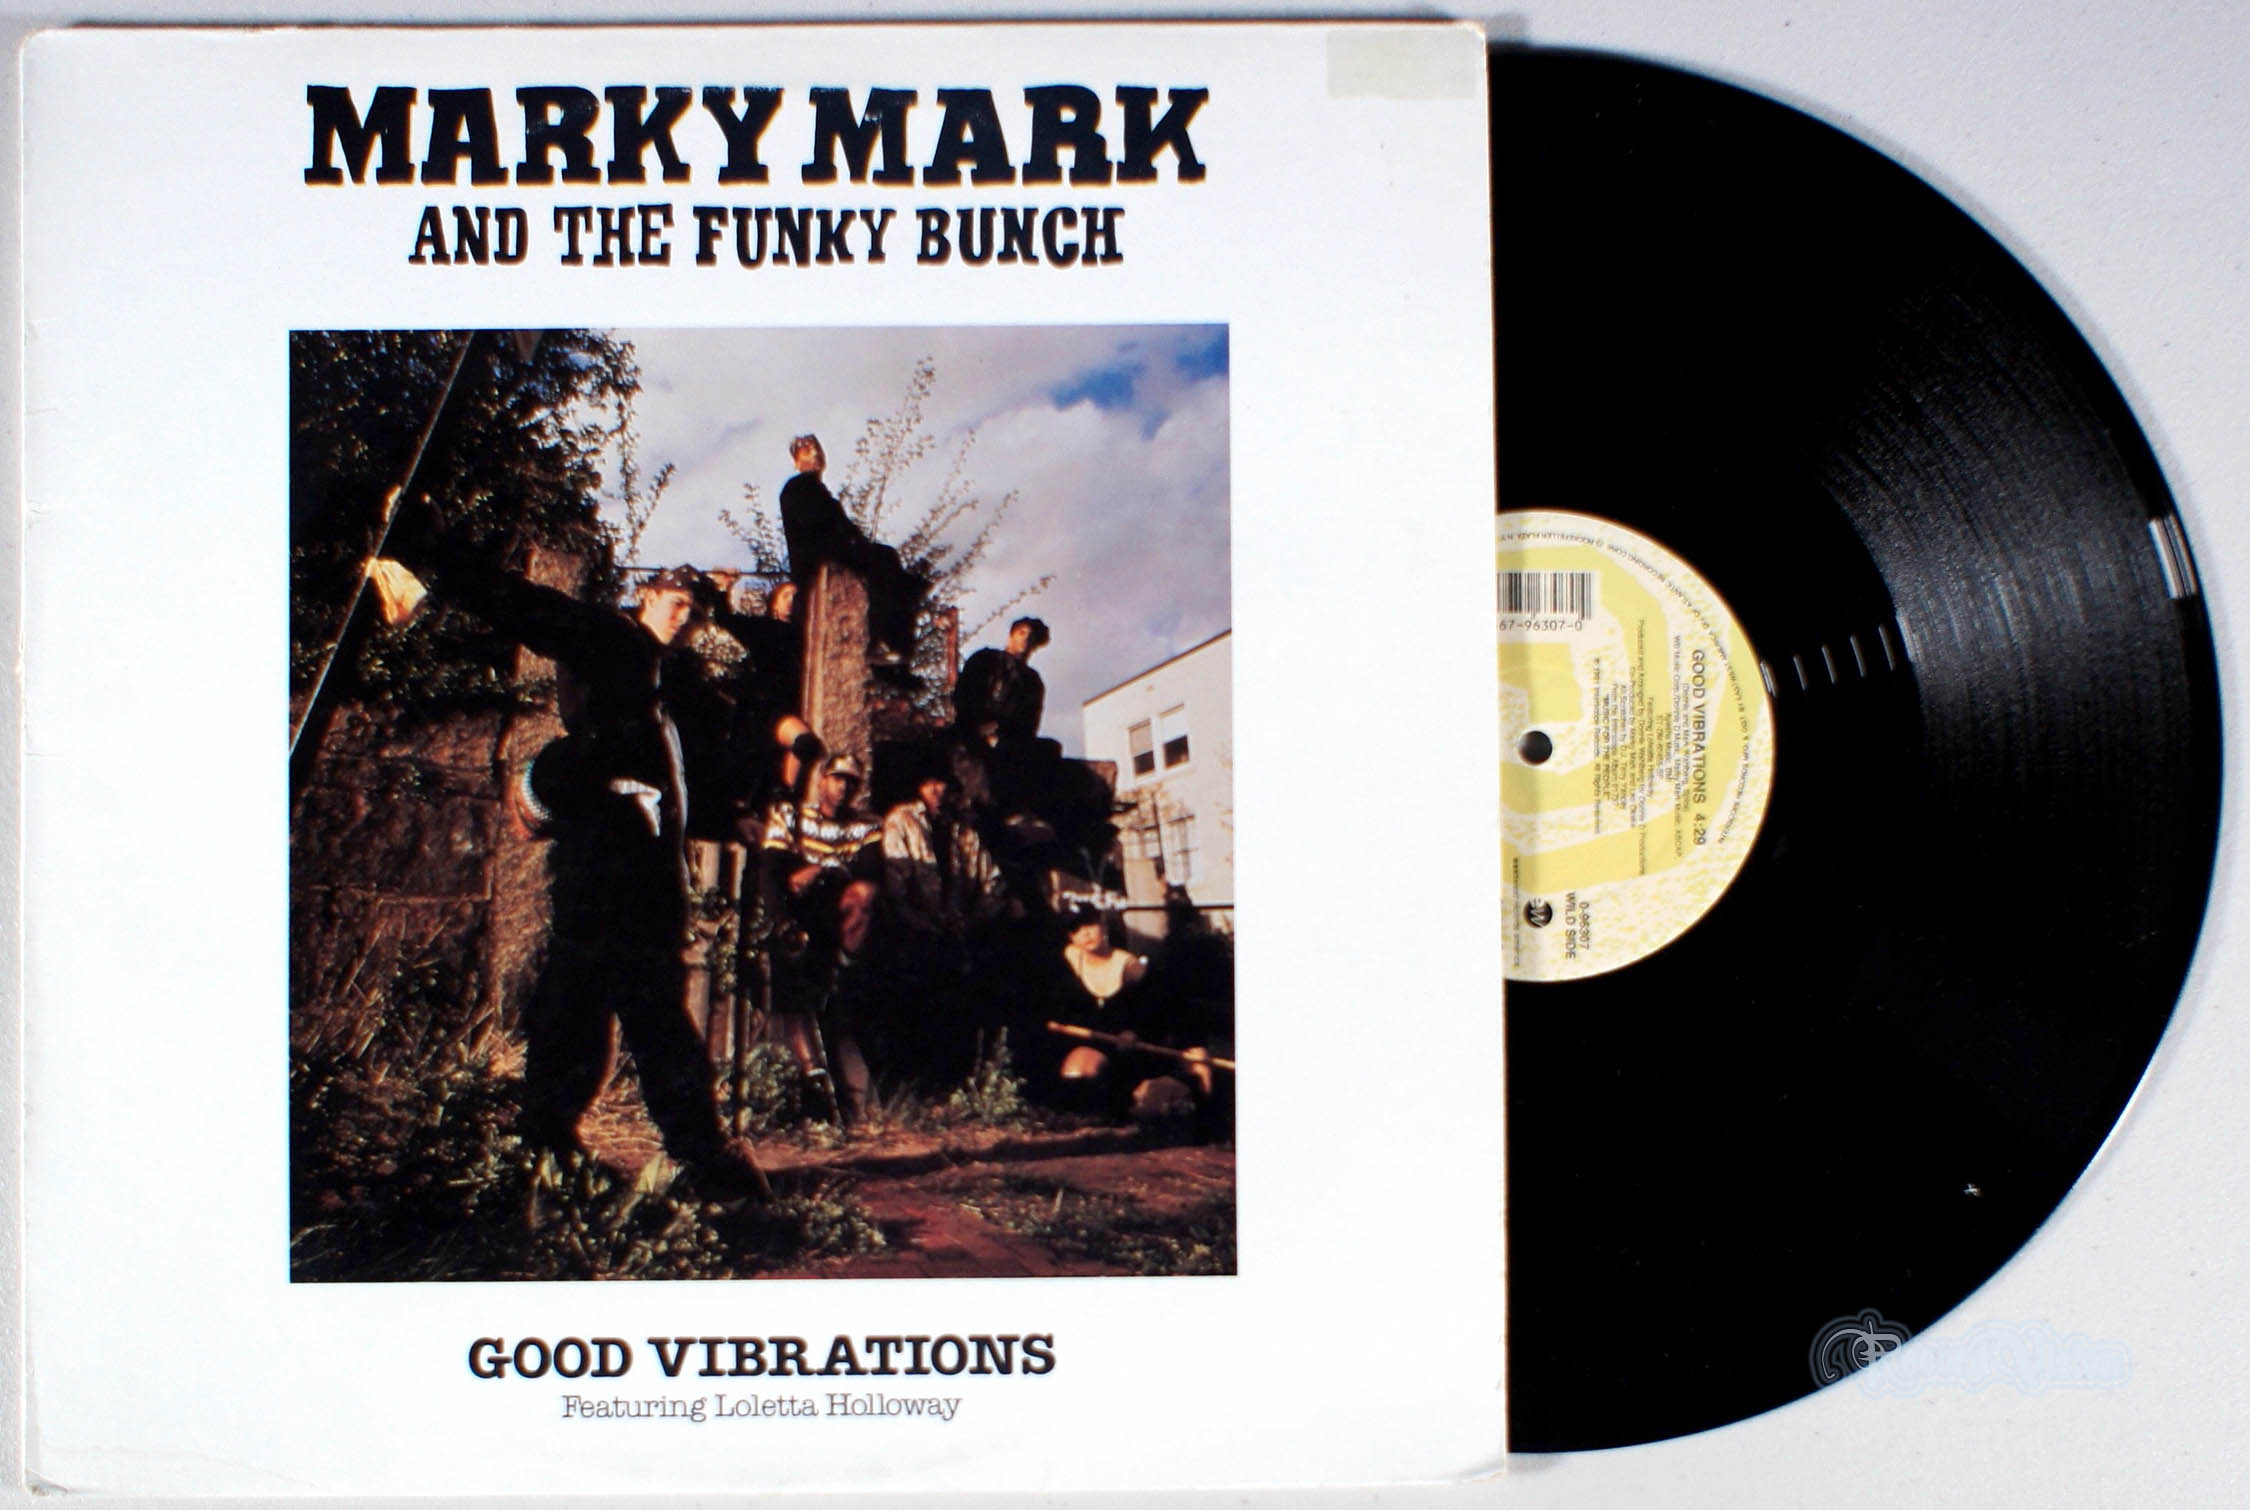 MARKY MARK - Good Vibrations - 12 inch x 1